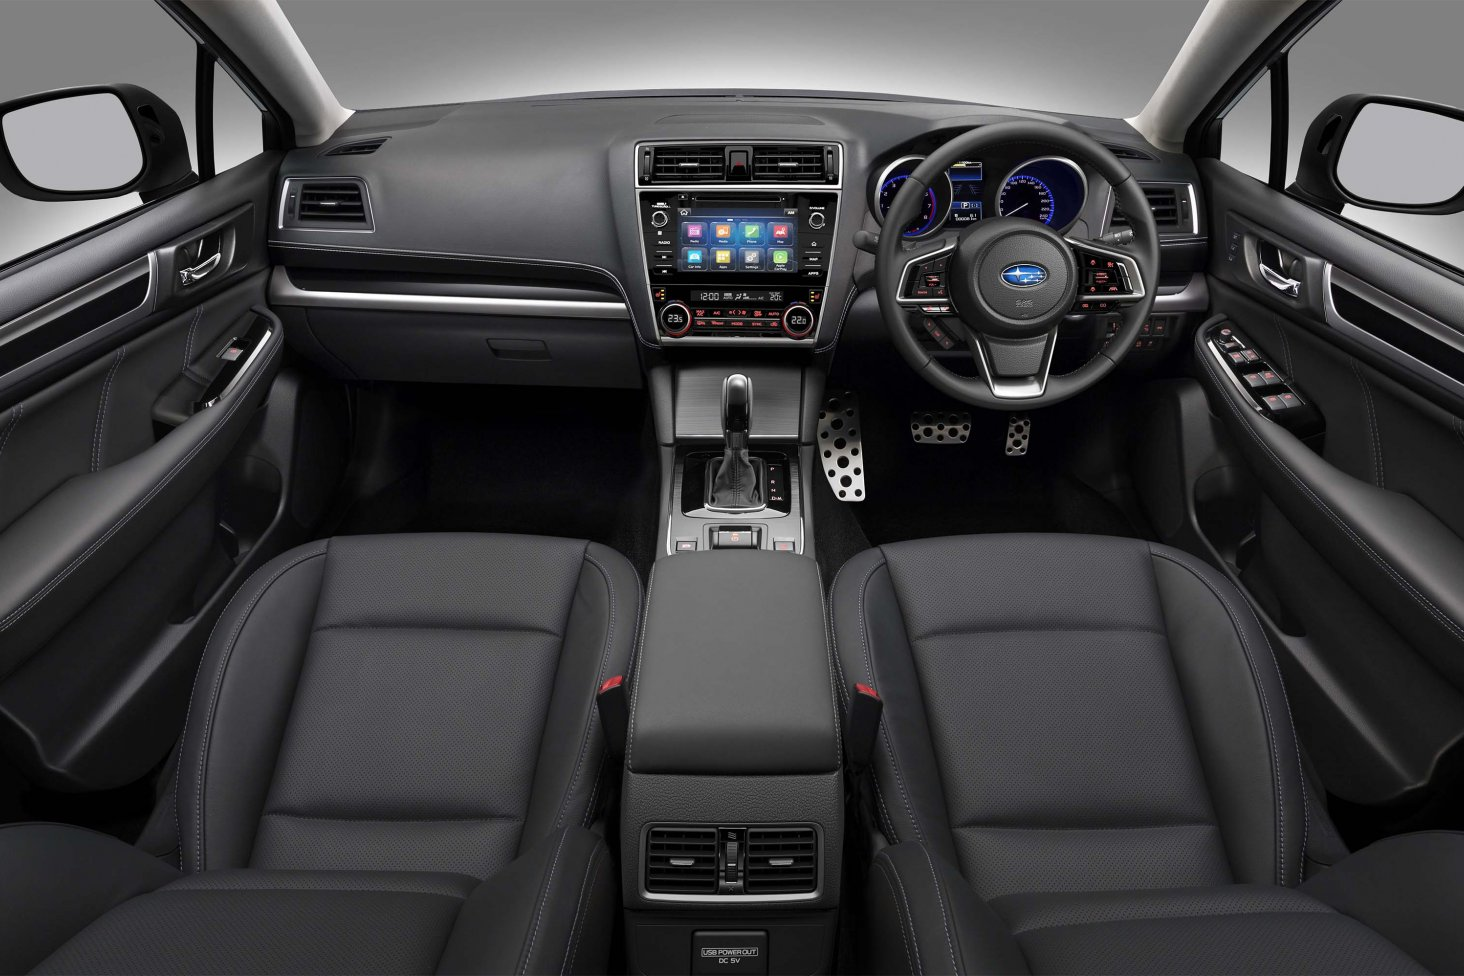 The 2018 Subaru Legacy 3.6RS' interior.